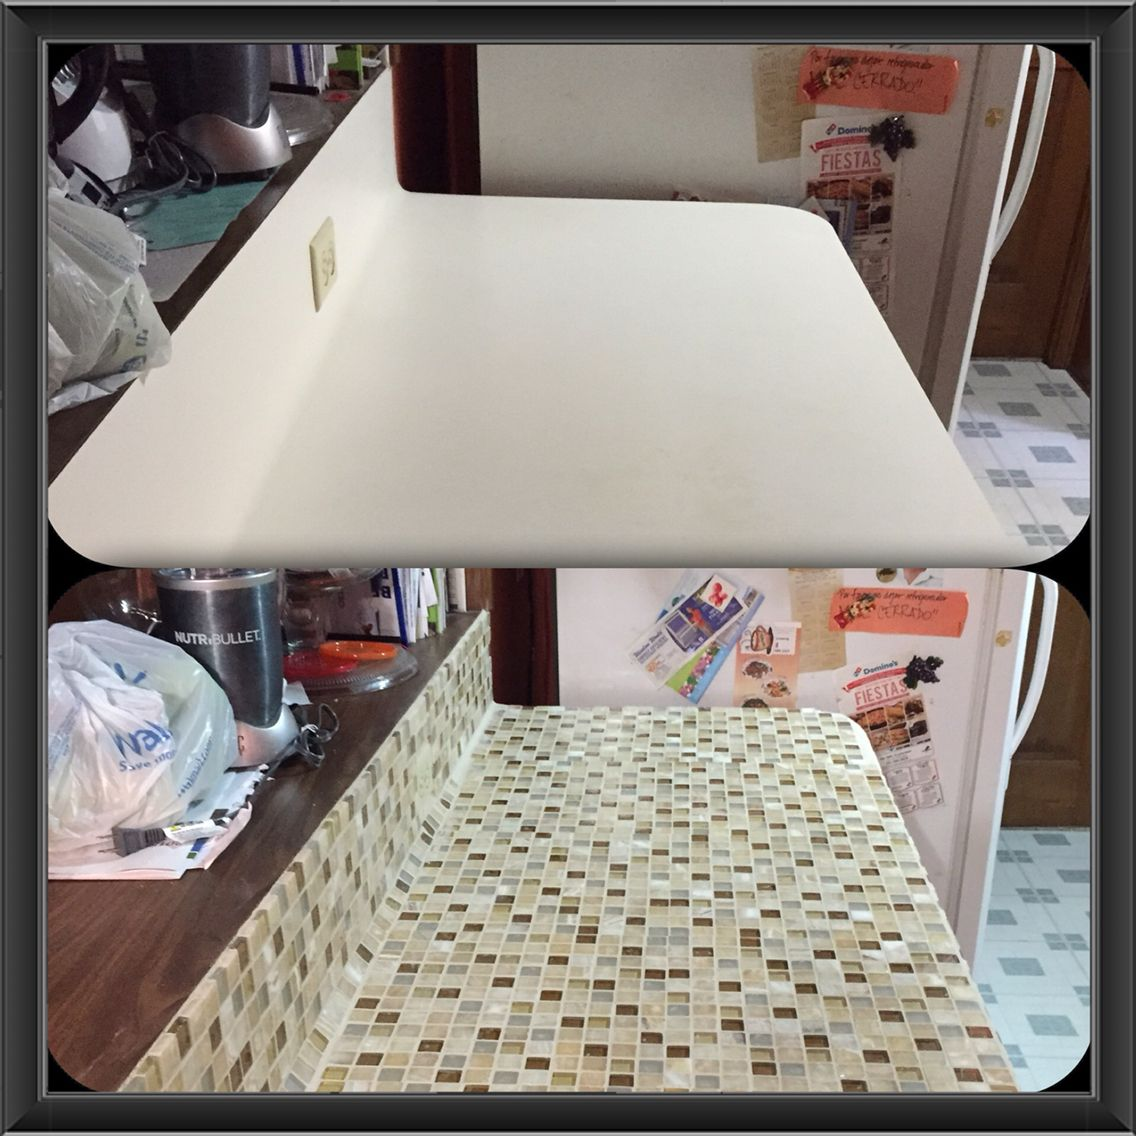 DIY kitchen Counter remodeling I spent for each 12x12